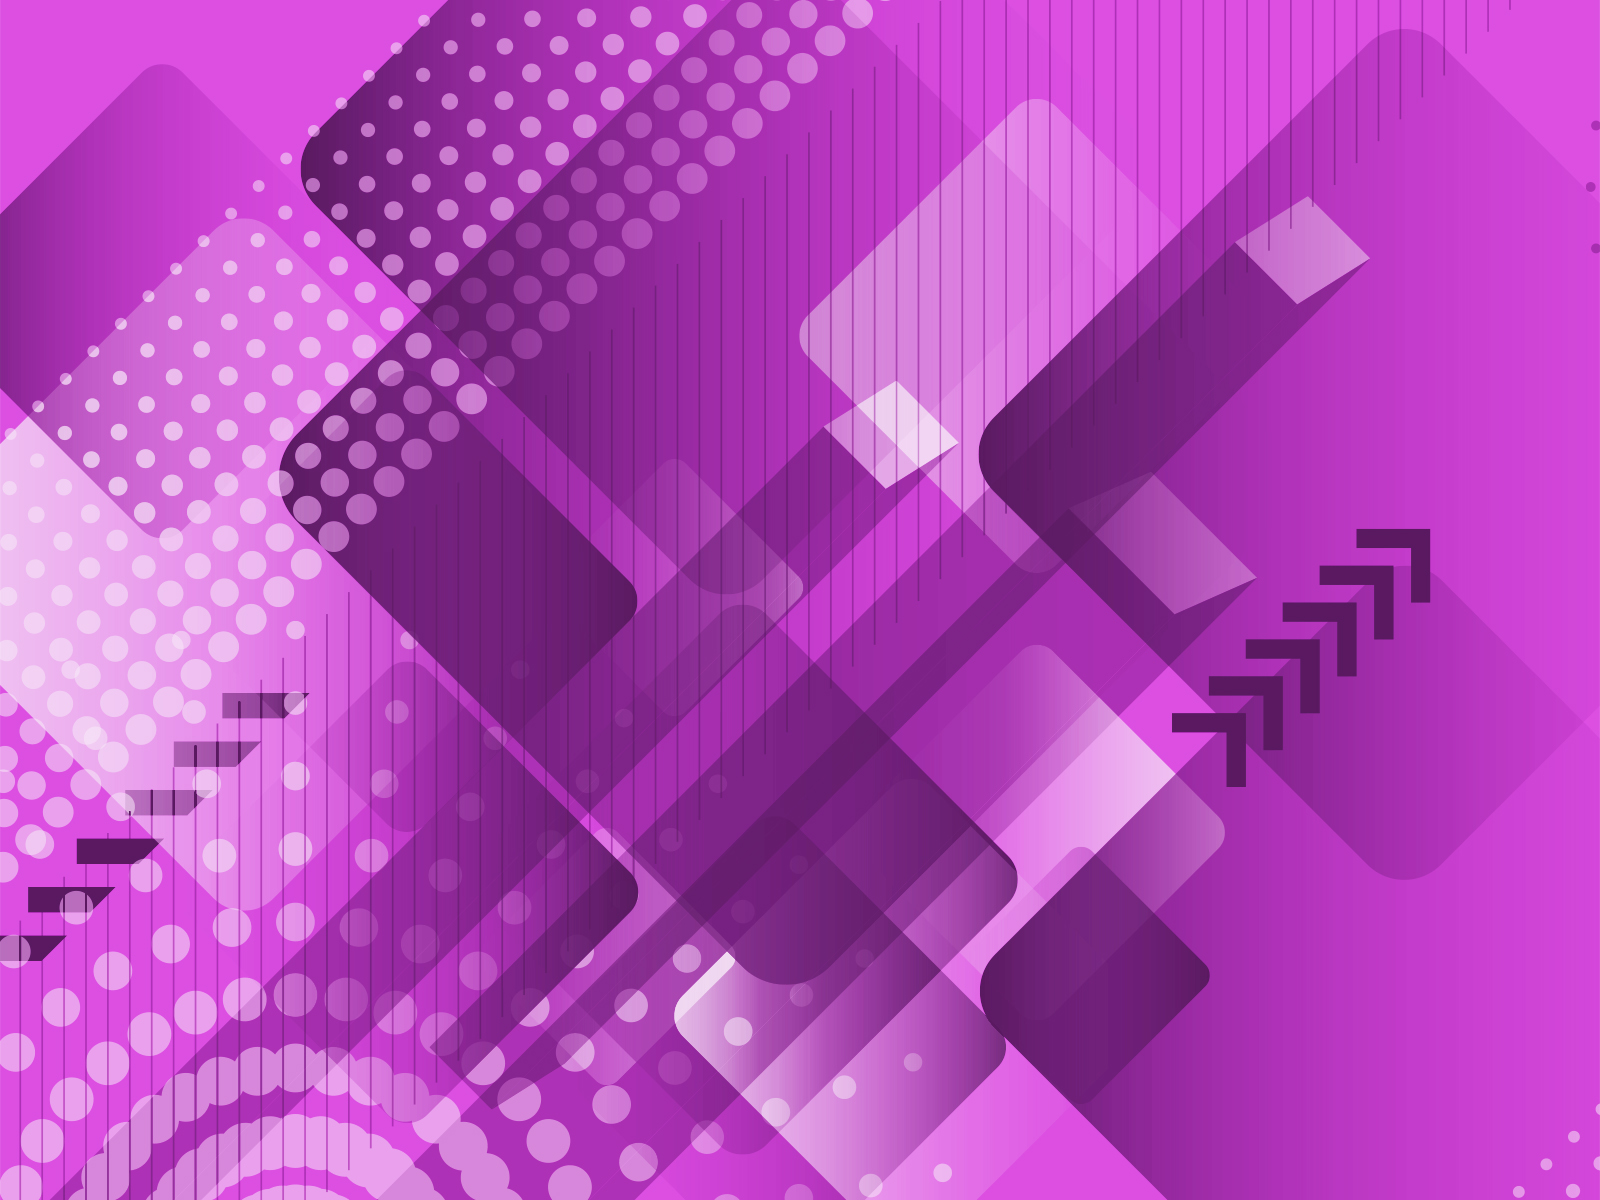 Technological Purple Powepoint Design